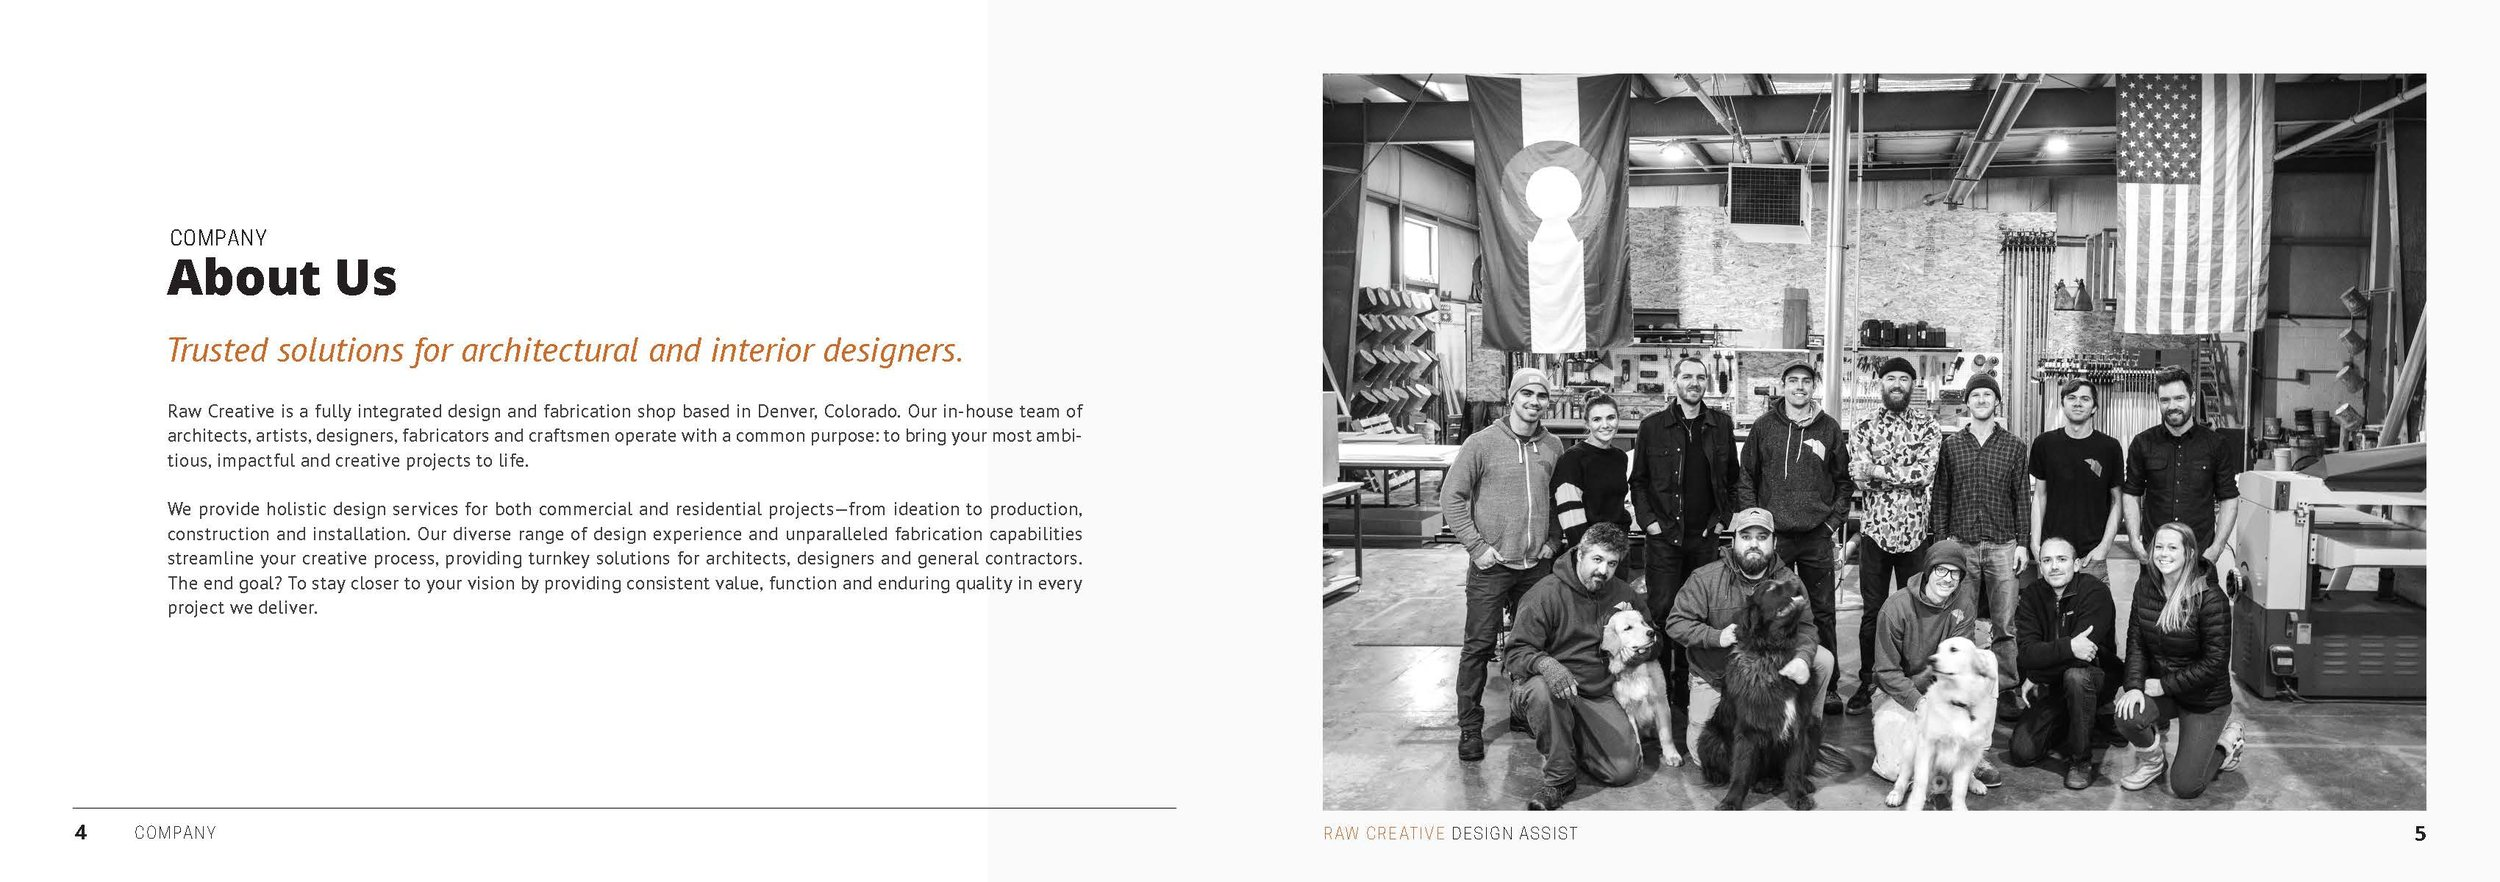 190306_design-assist_booklet_Page_03.jpg